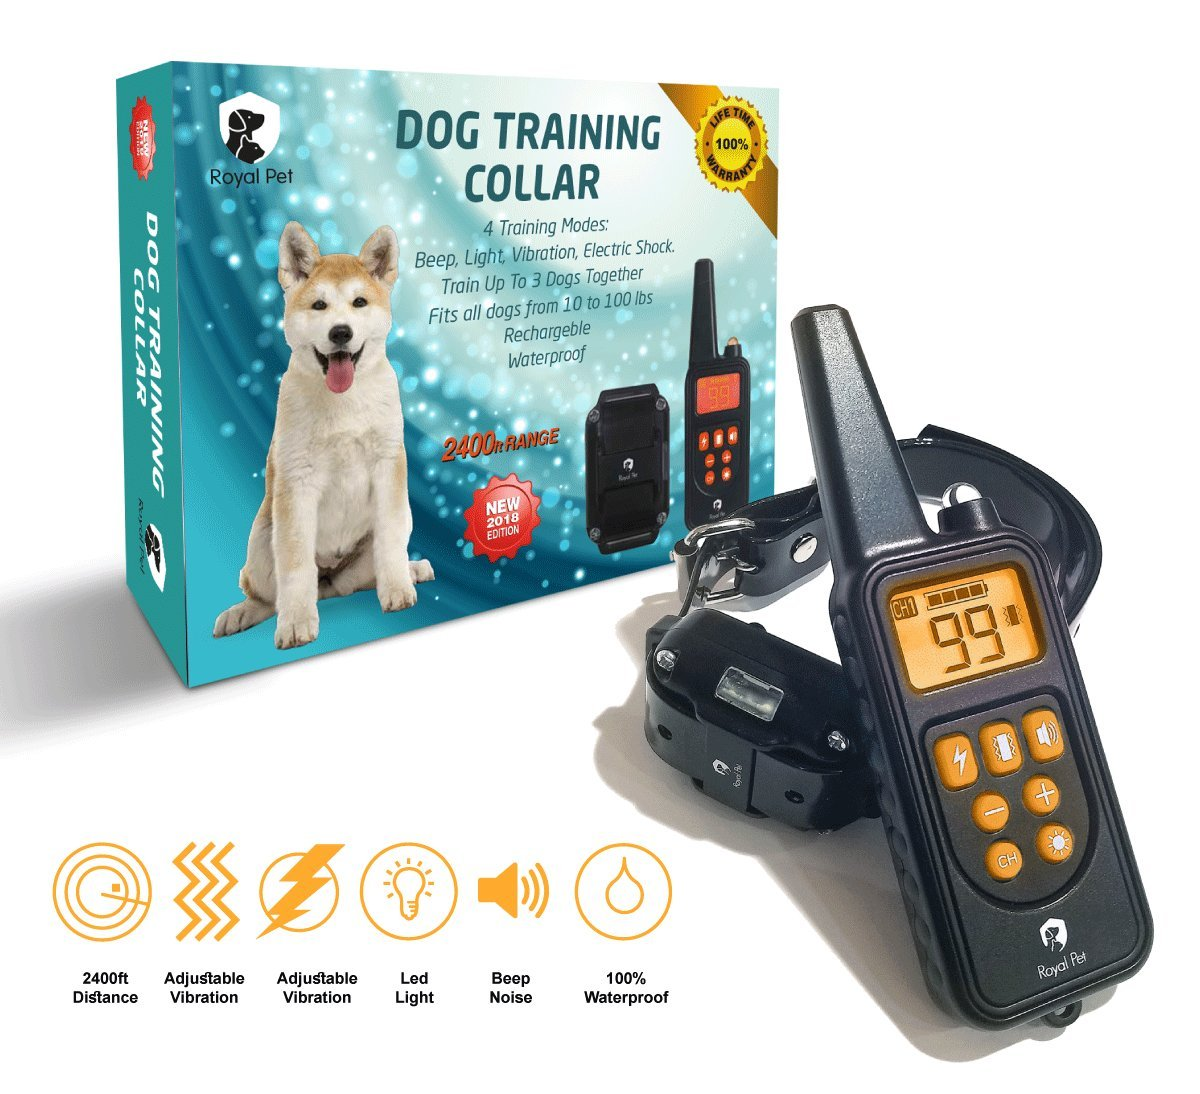 Dog Training E-Collar with Remote [ 2018 Edition ] - 2400 ft Range, IPX7 Waterproof & Rechargeable Collar With Beep, Vibration, Light and Shock - Dog Shock Collar for Puppy, Small, Medium & Large Dogs